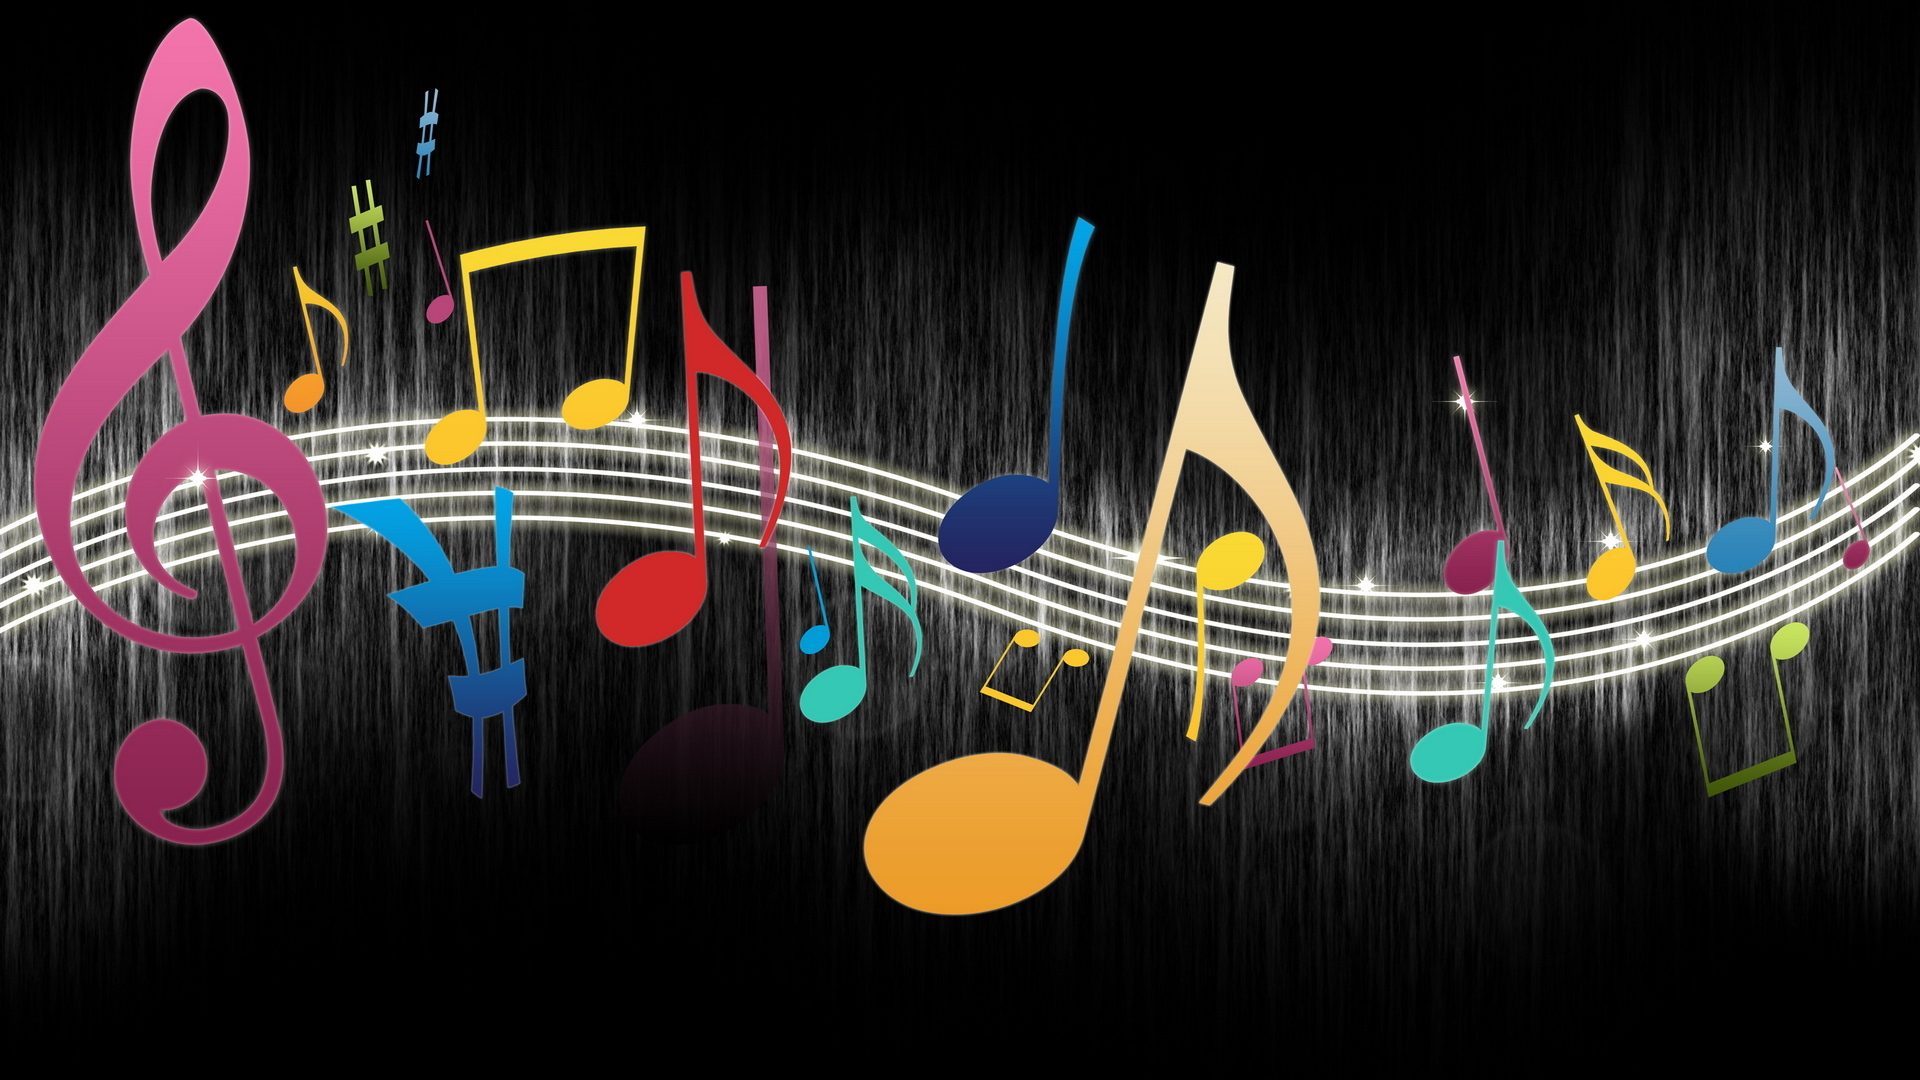 Music Wallpaper Background Windows